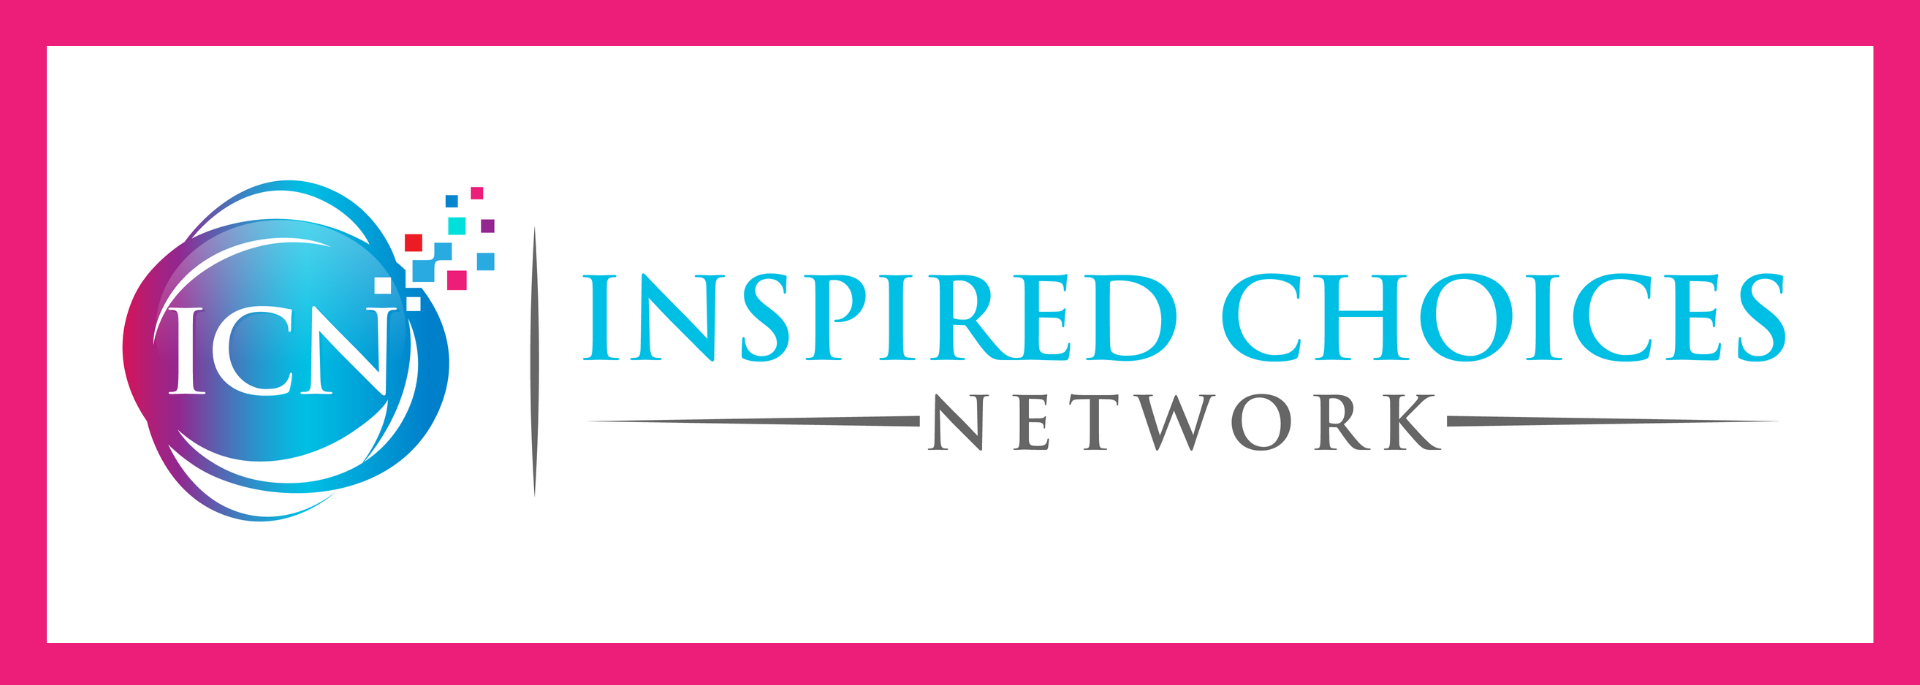 Inspired Choices Network channel